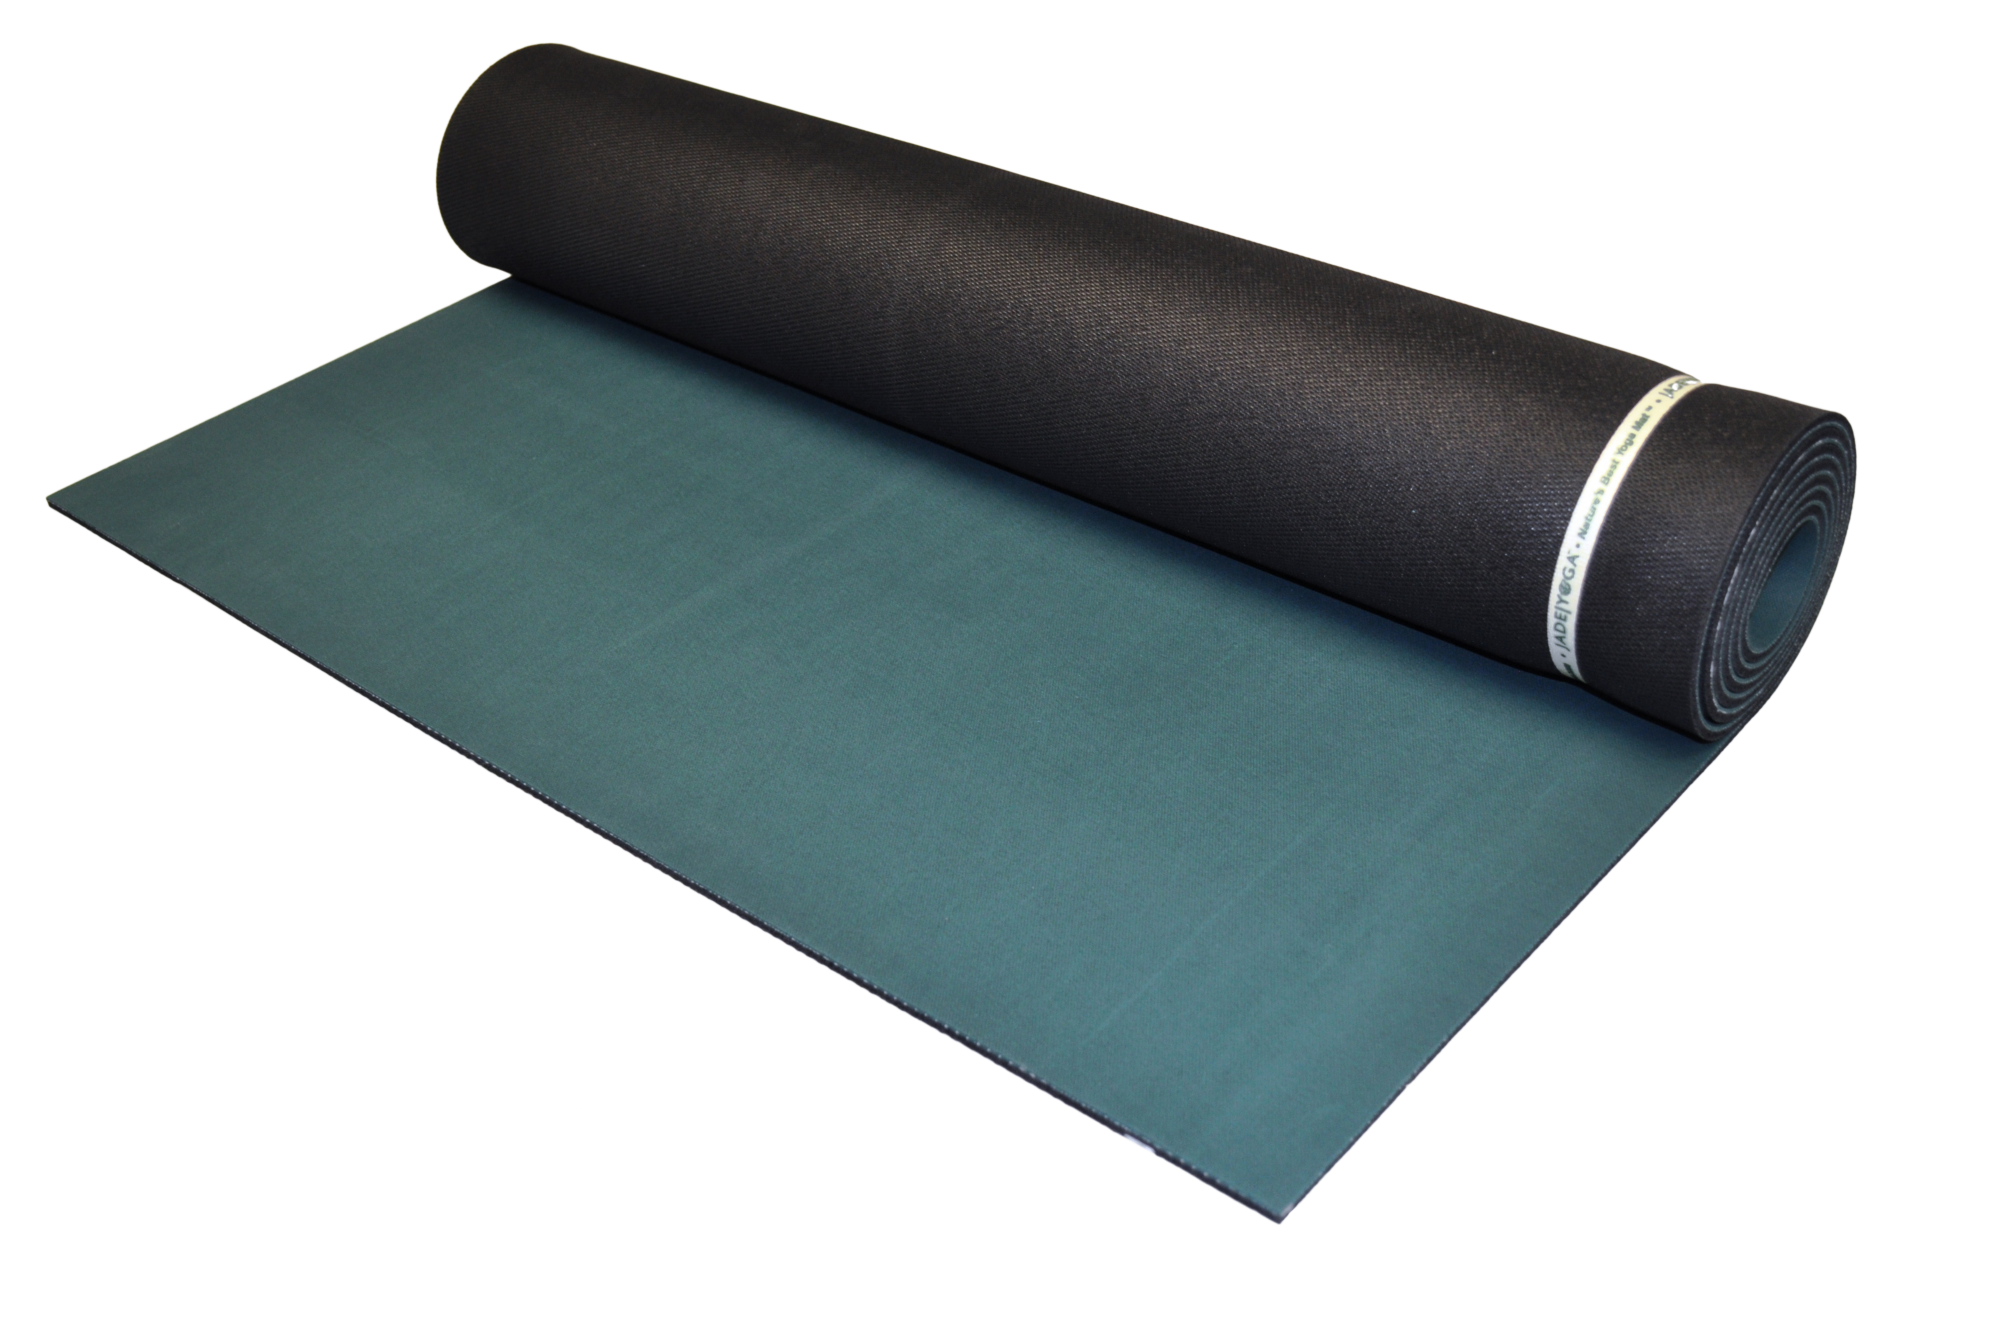 travel gaiam jade p the foldable for mats mat yoga best